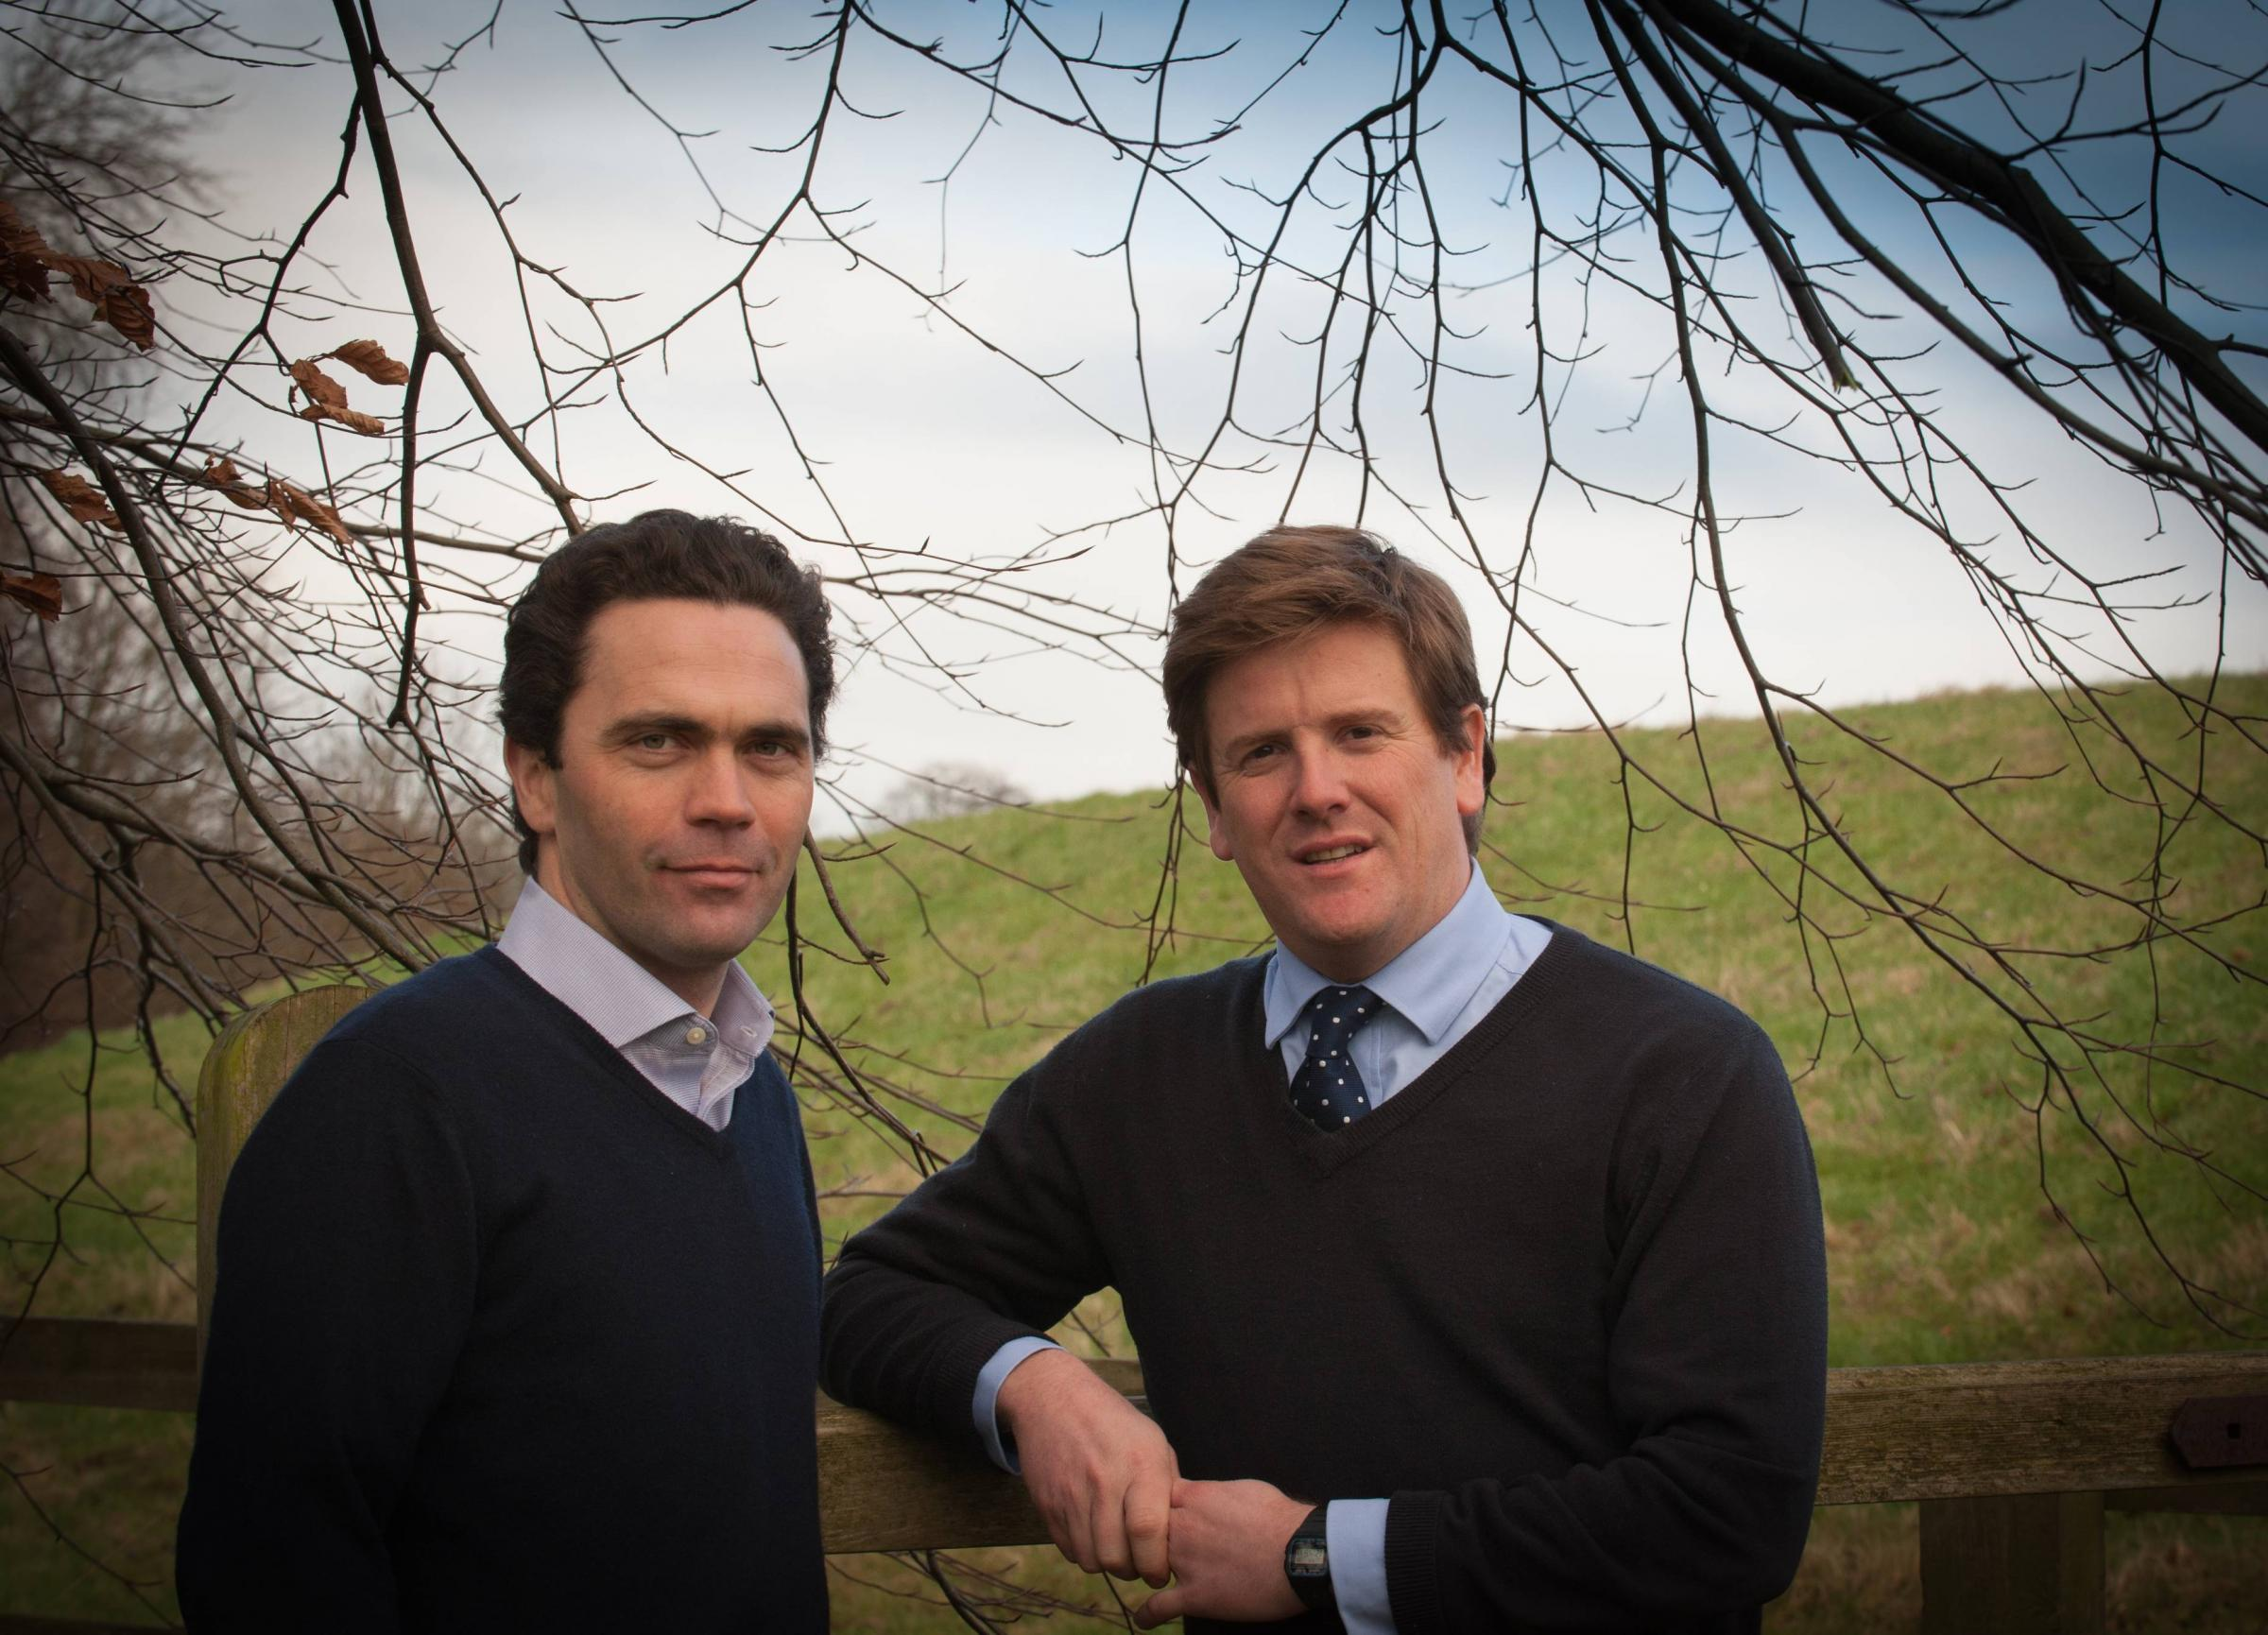 RESEARCH: Directors of the Search Partnership Tony Milbank and Tom Robinson